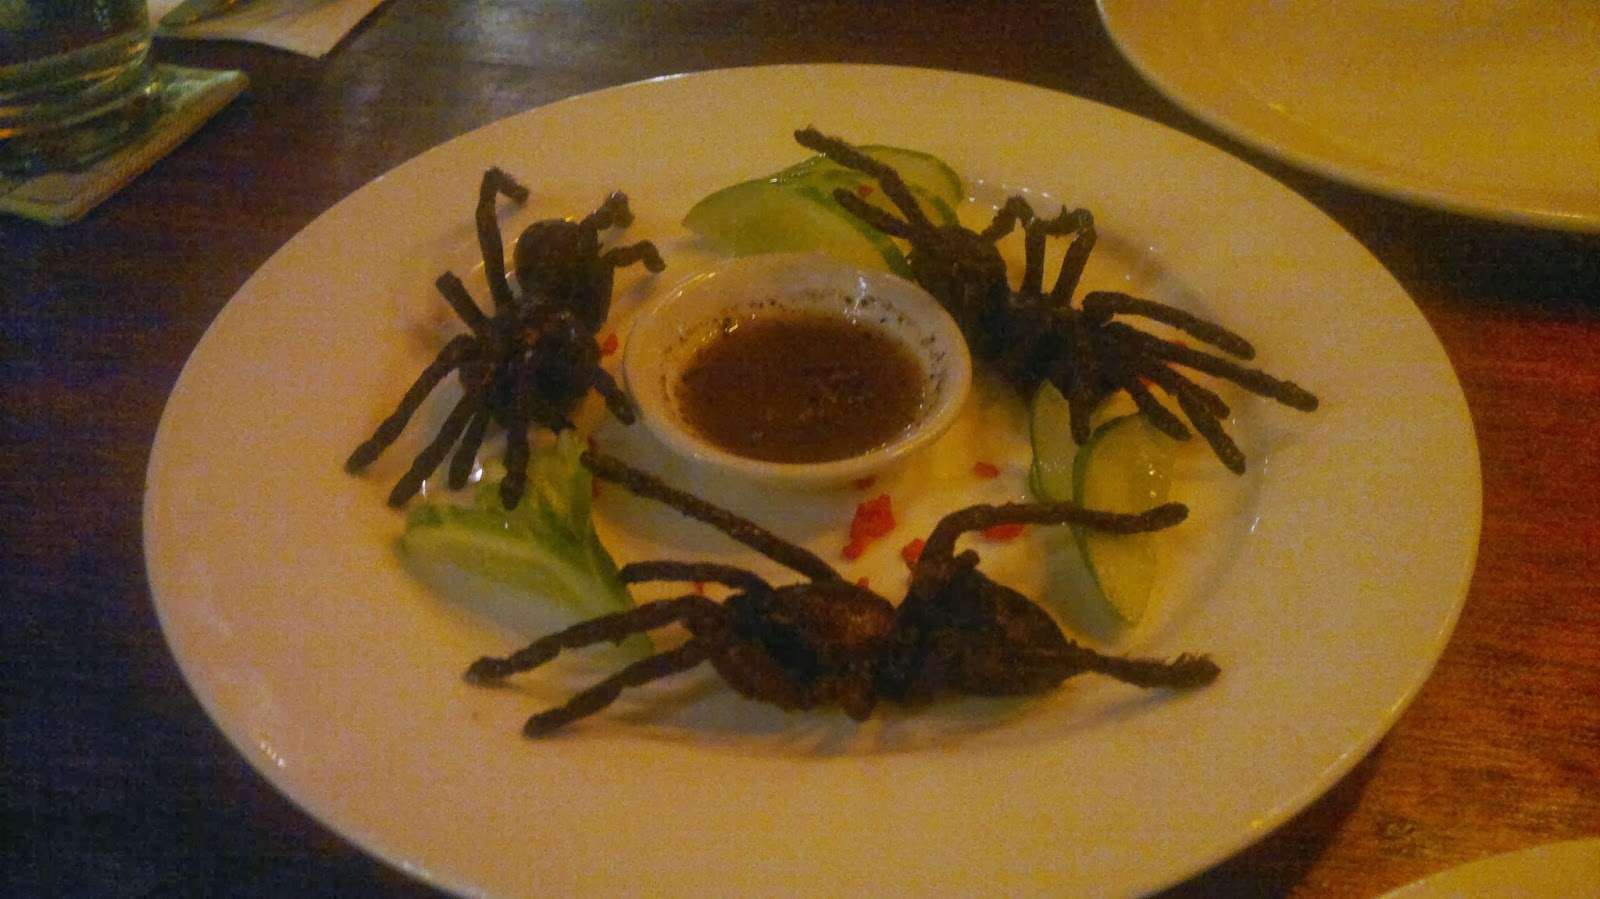 And deep-fried on my plate! & TARANTULA SPIDER FOR DINNER?! | SUCCESS IN HIGH HEELS